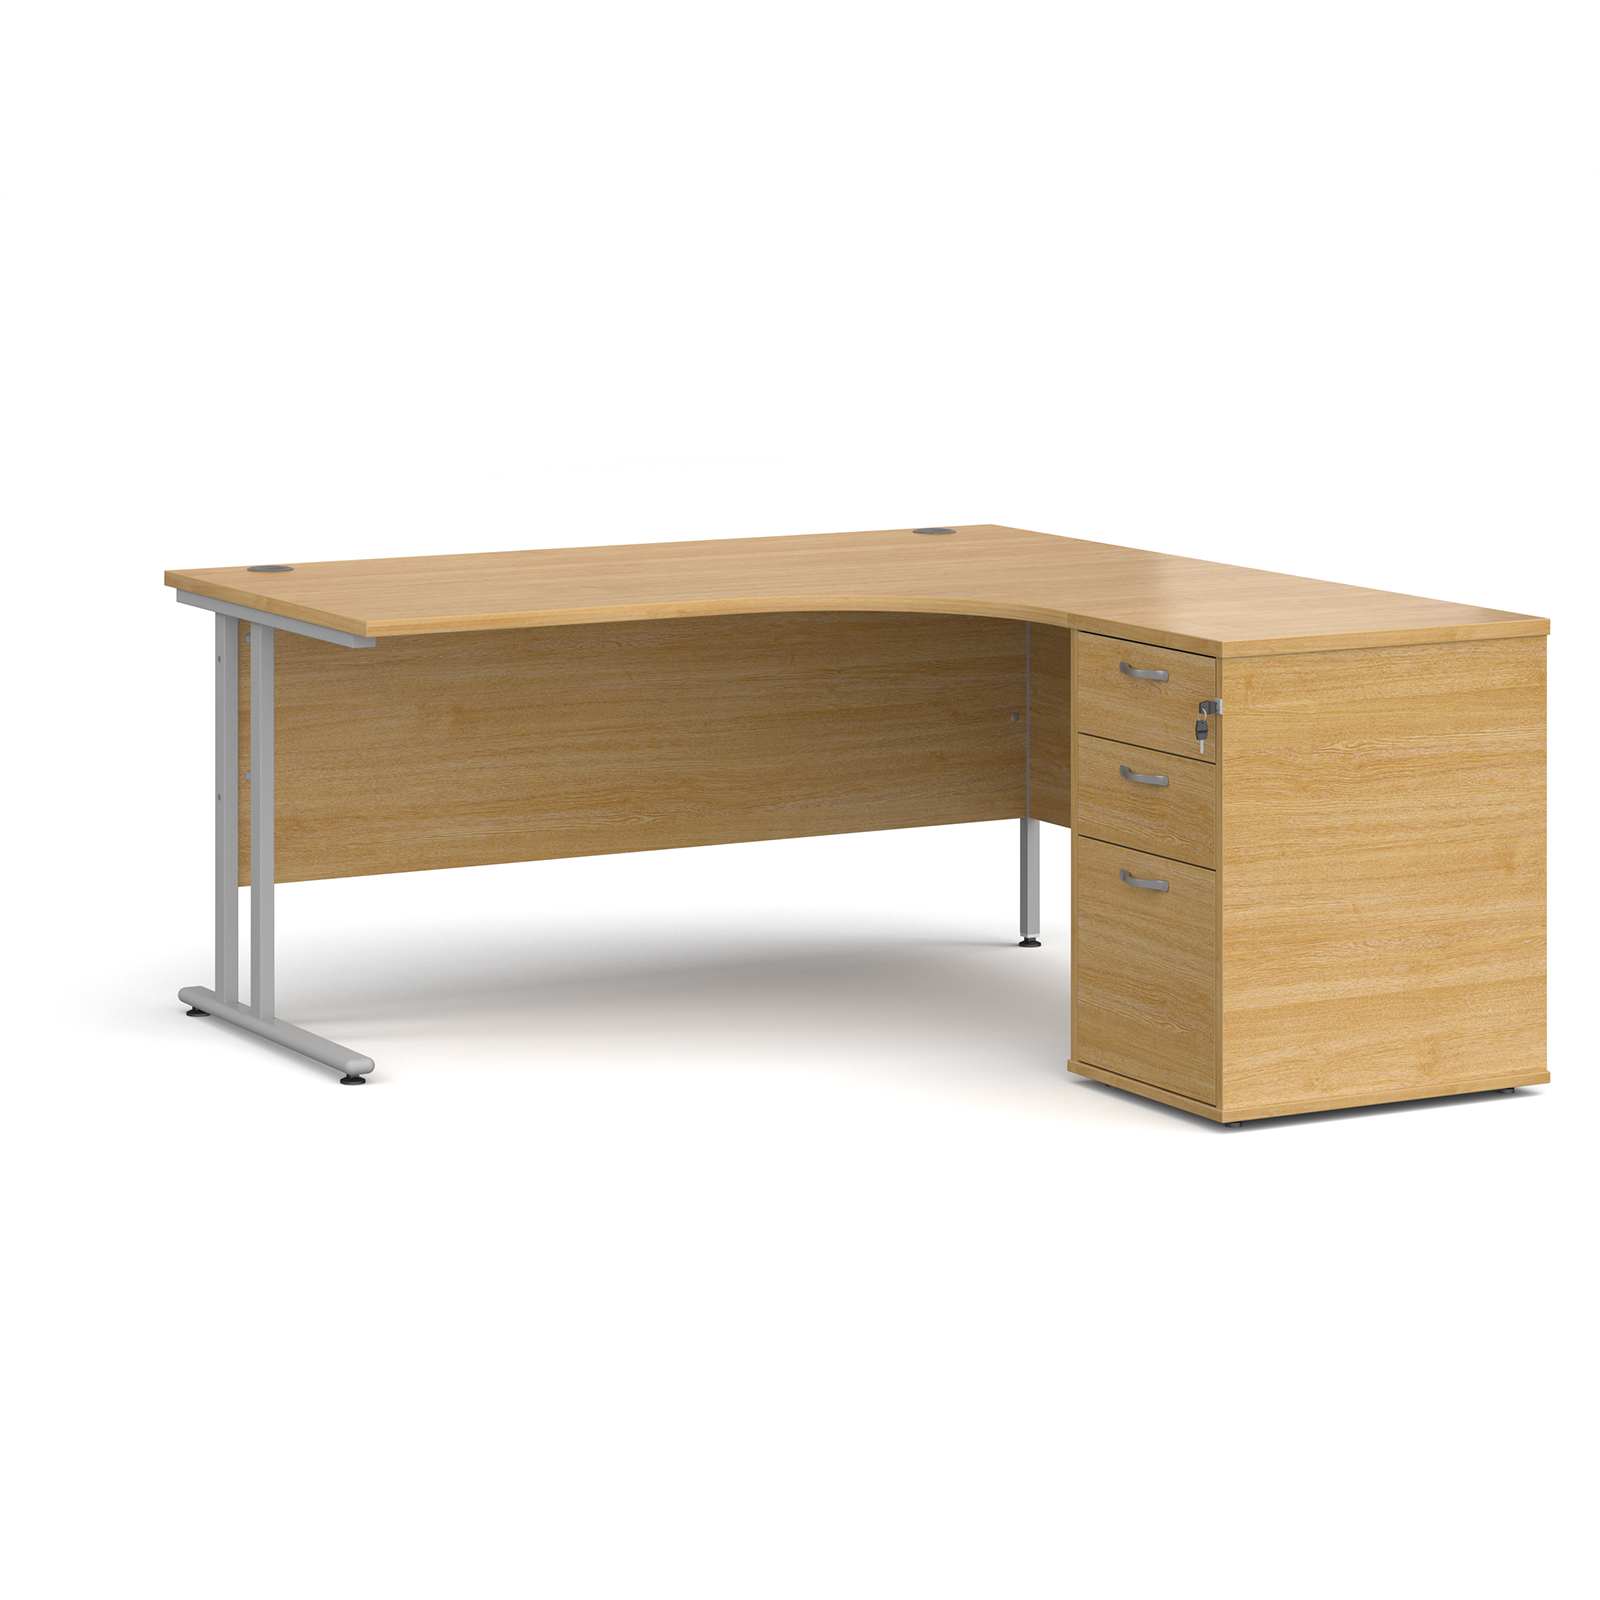 Right Handed Maestro 25 right hand ergonomic desk 1600mm with silver cantilever frame and desk high pedestal - oak